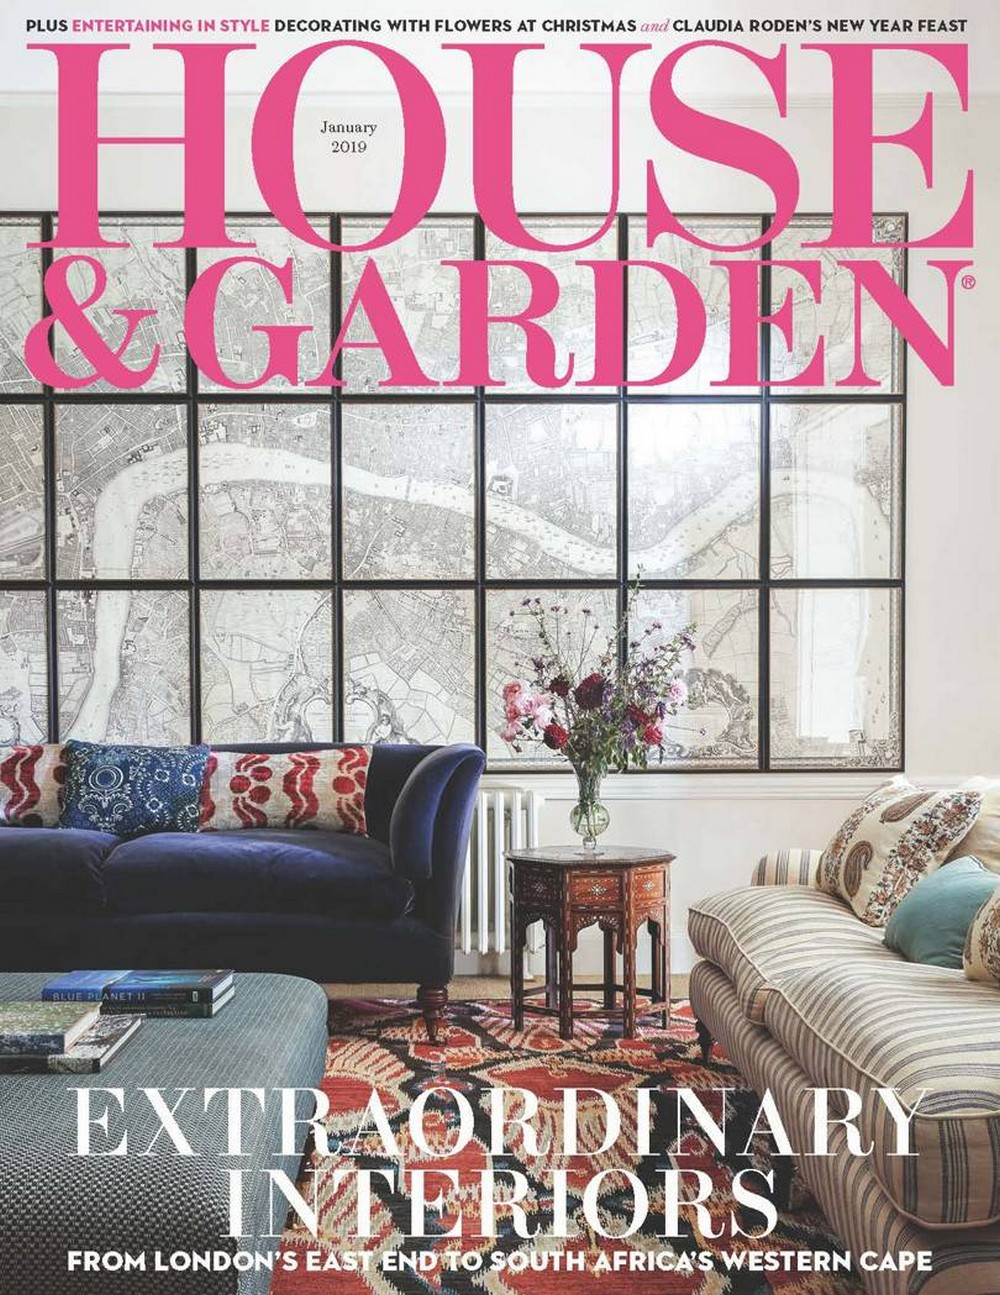 The Highlights Of The House and Garden January Issue! house and garden january issue The Highlights Of The House and Garden January Issue! The Highlights Of The House and Garden January Issue